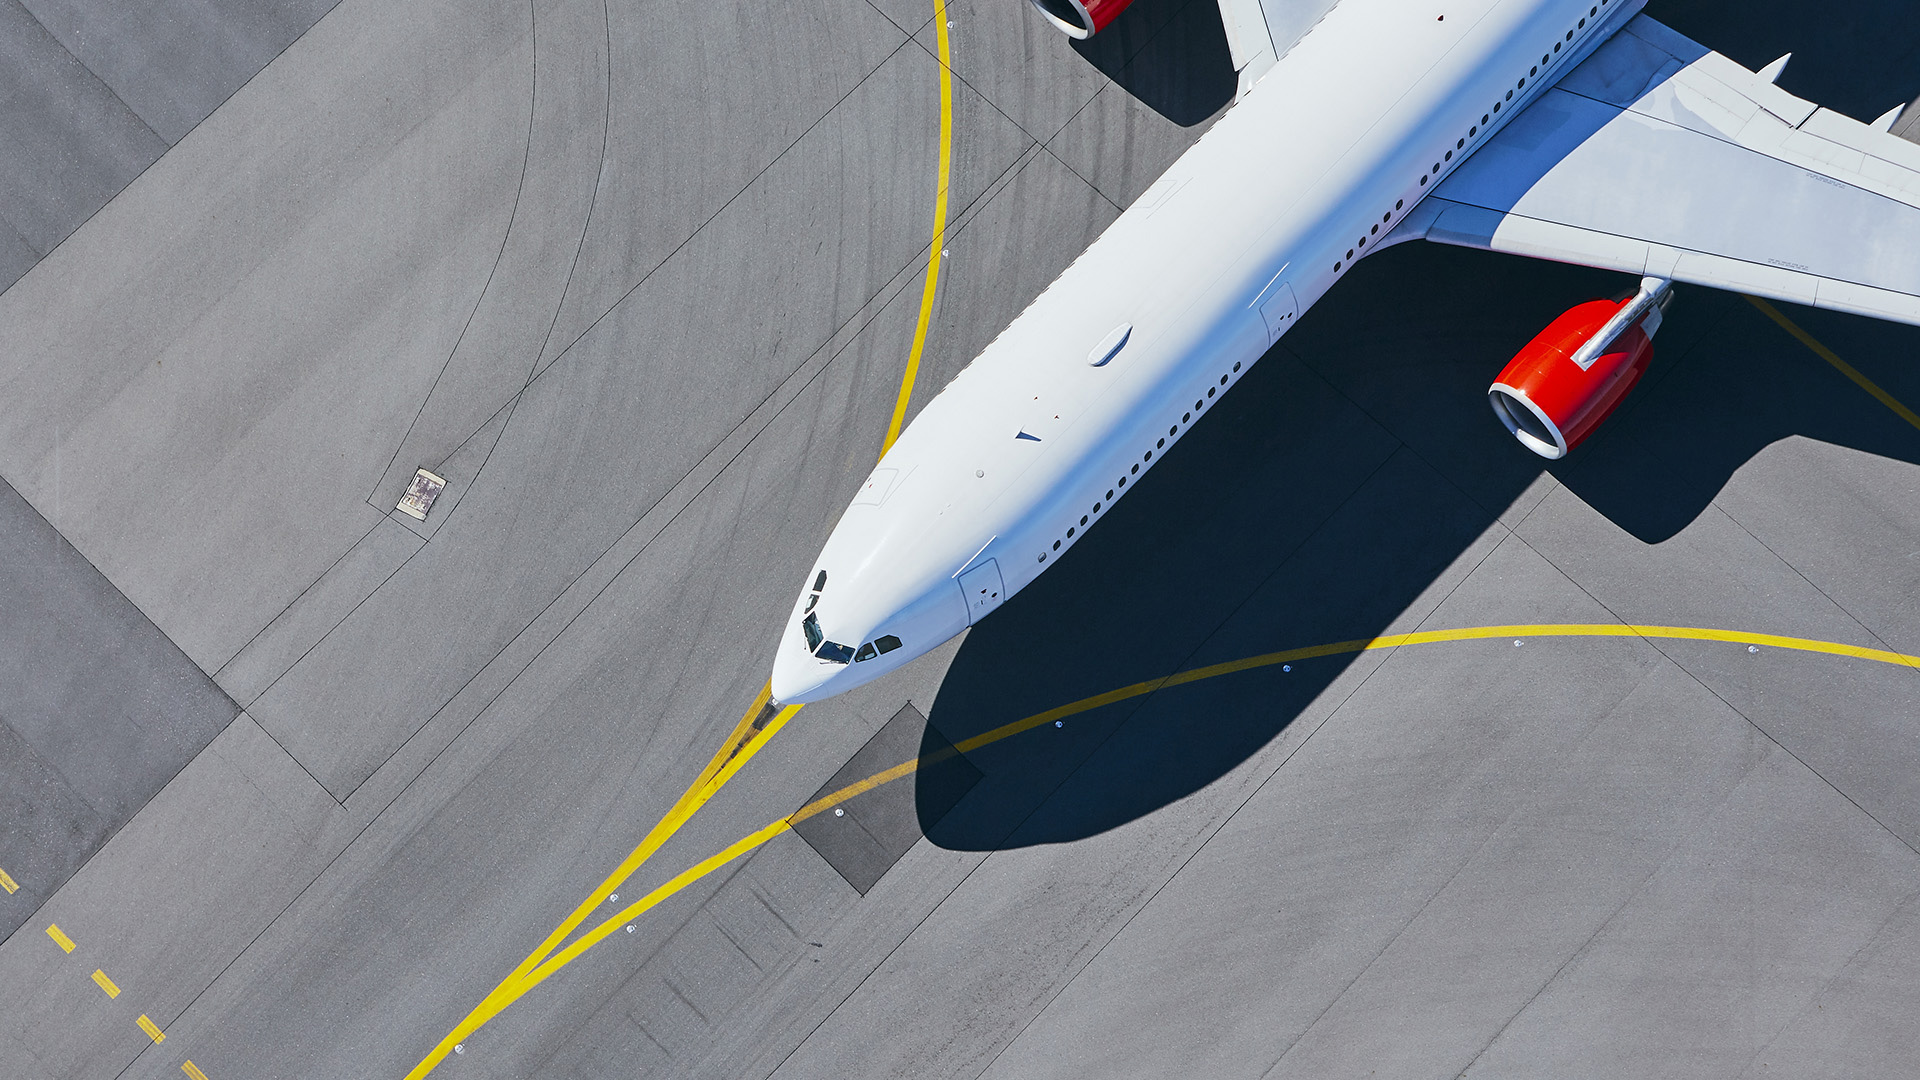 Image of aircraft on the runway